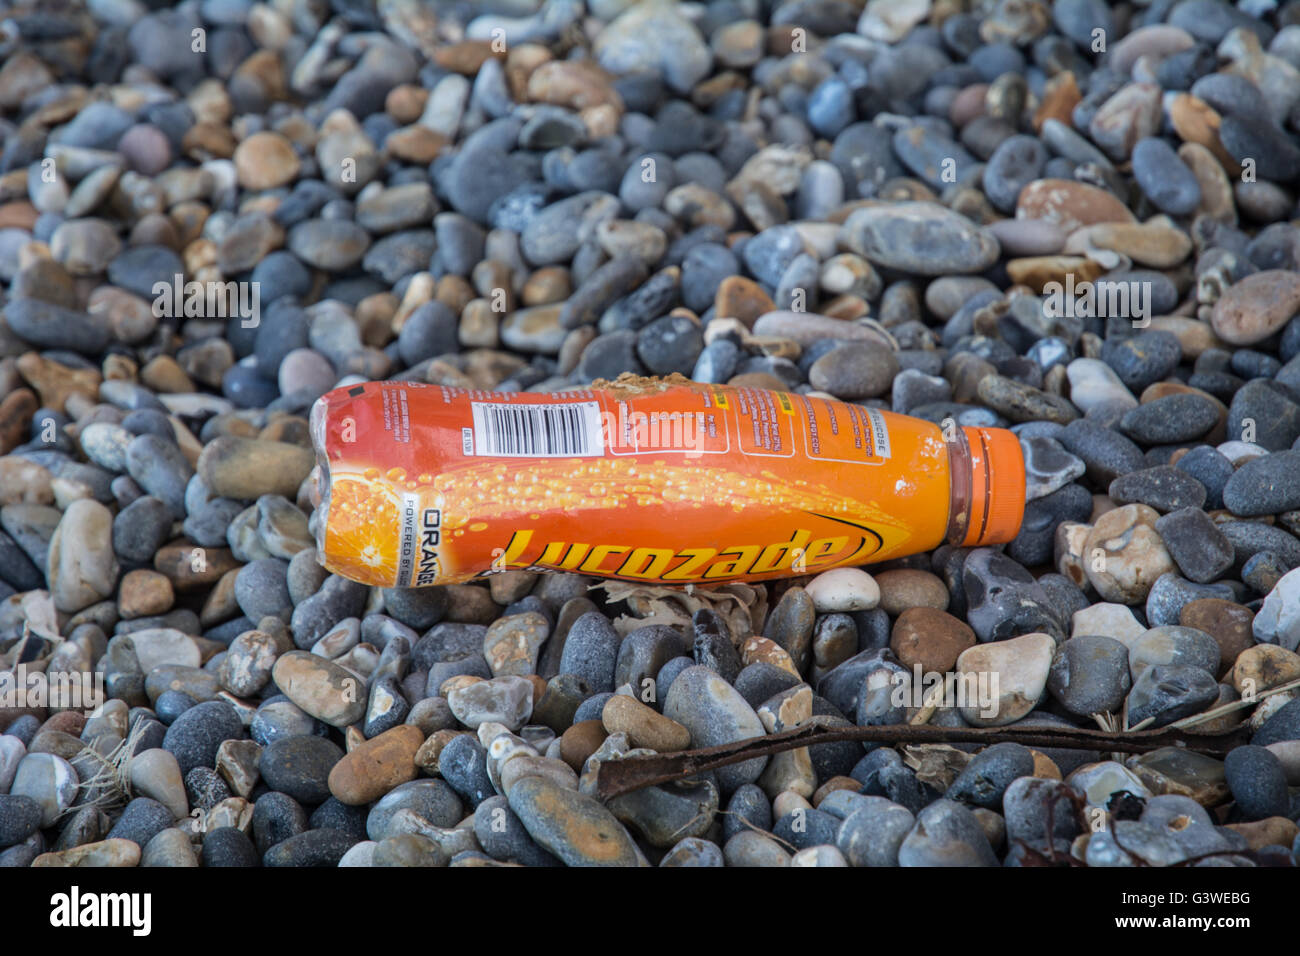 A Lucozade bottle on the floor at a stony beach in Norfolk. - Stock Image